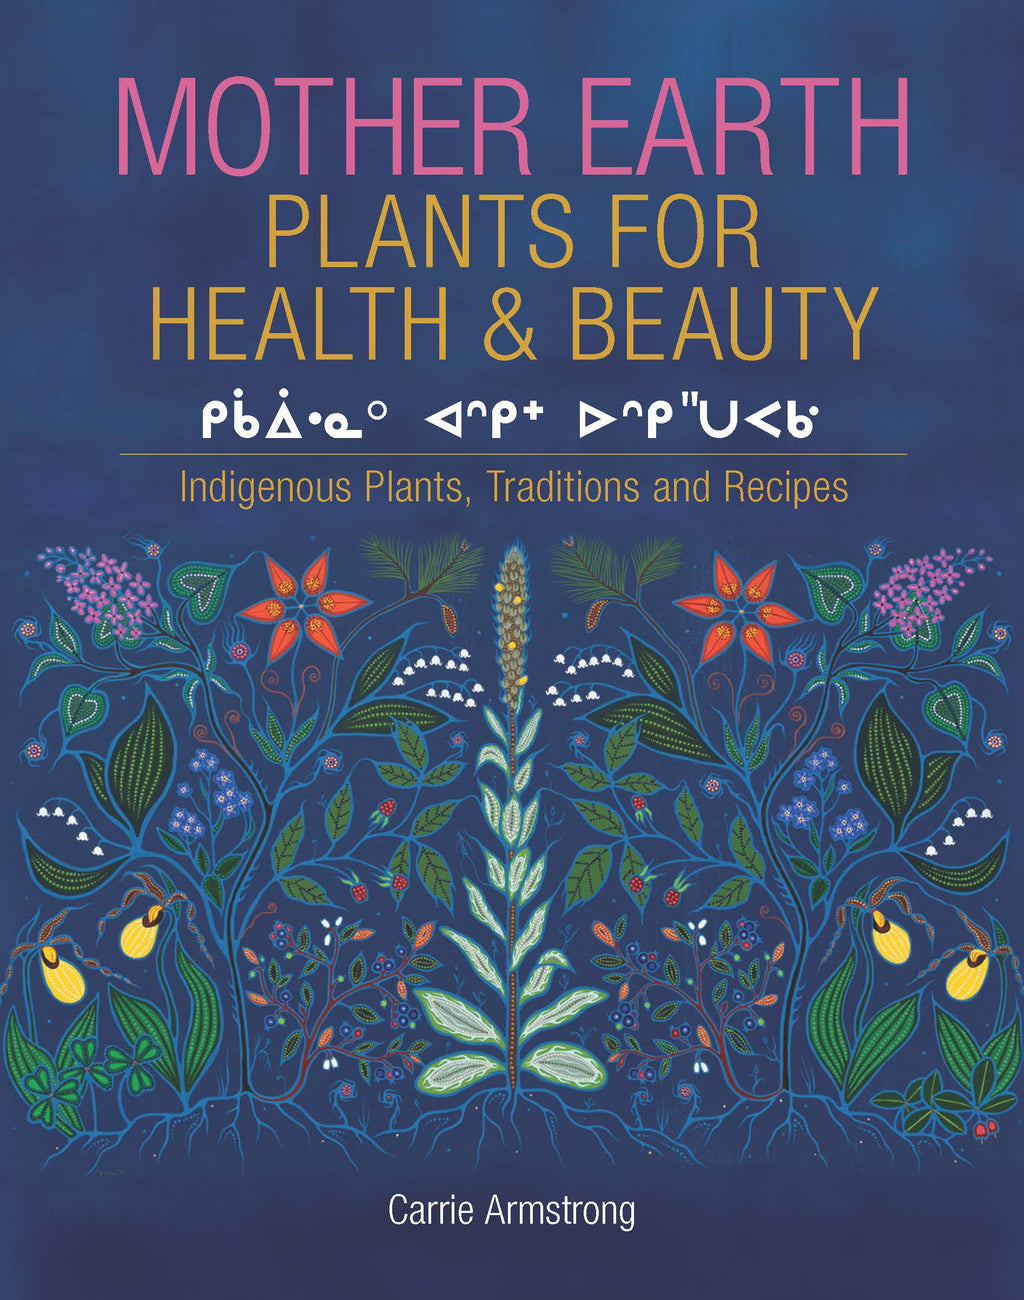 Mother Earth: Plants for Health & Beauty